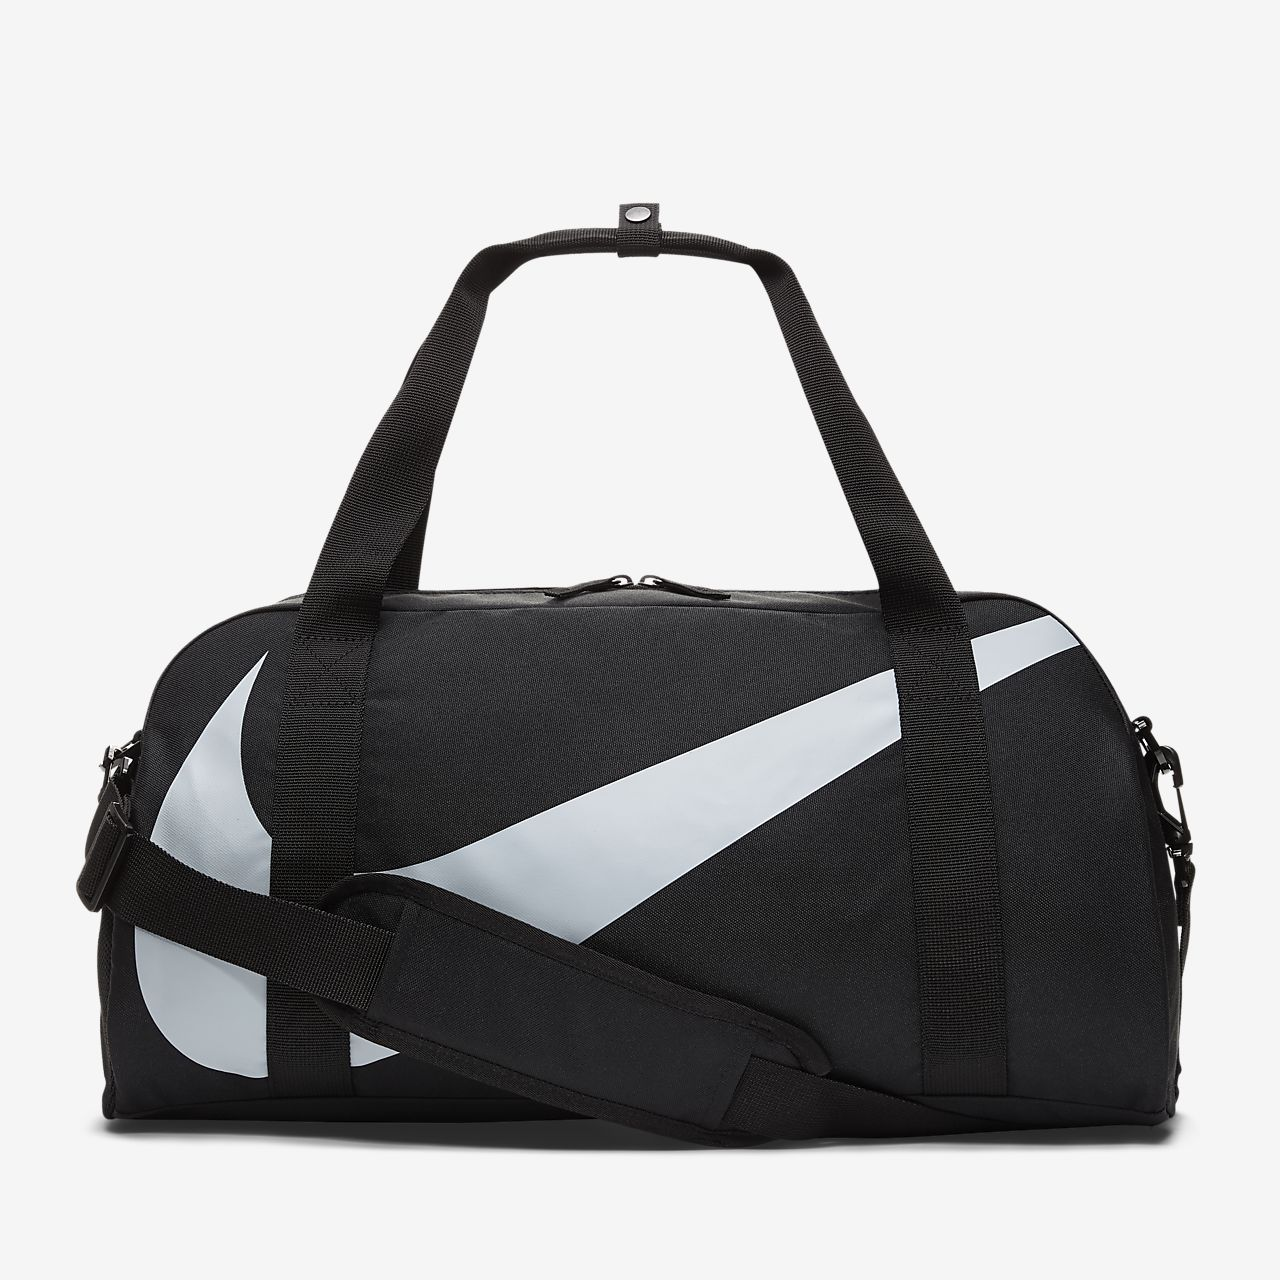 2dda2d28f982 Nike Gym Club Kids  Duffel Bag. Nike.com